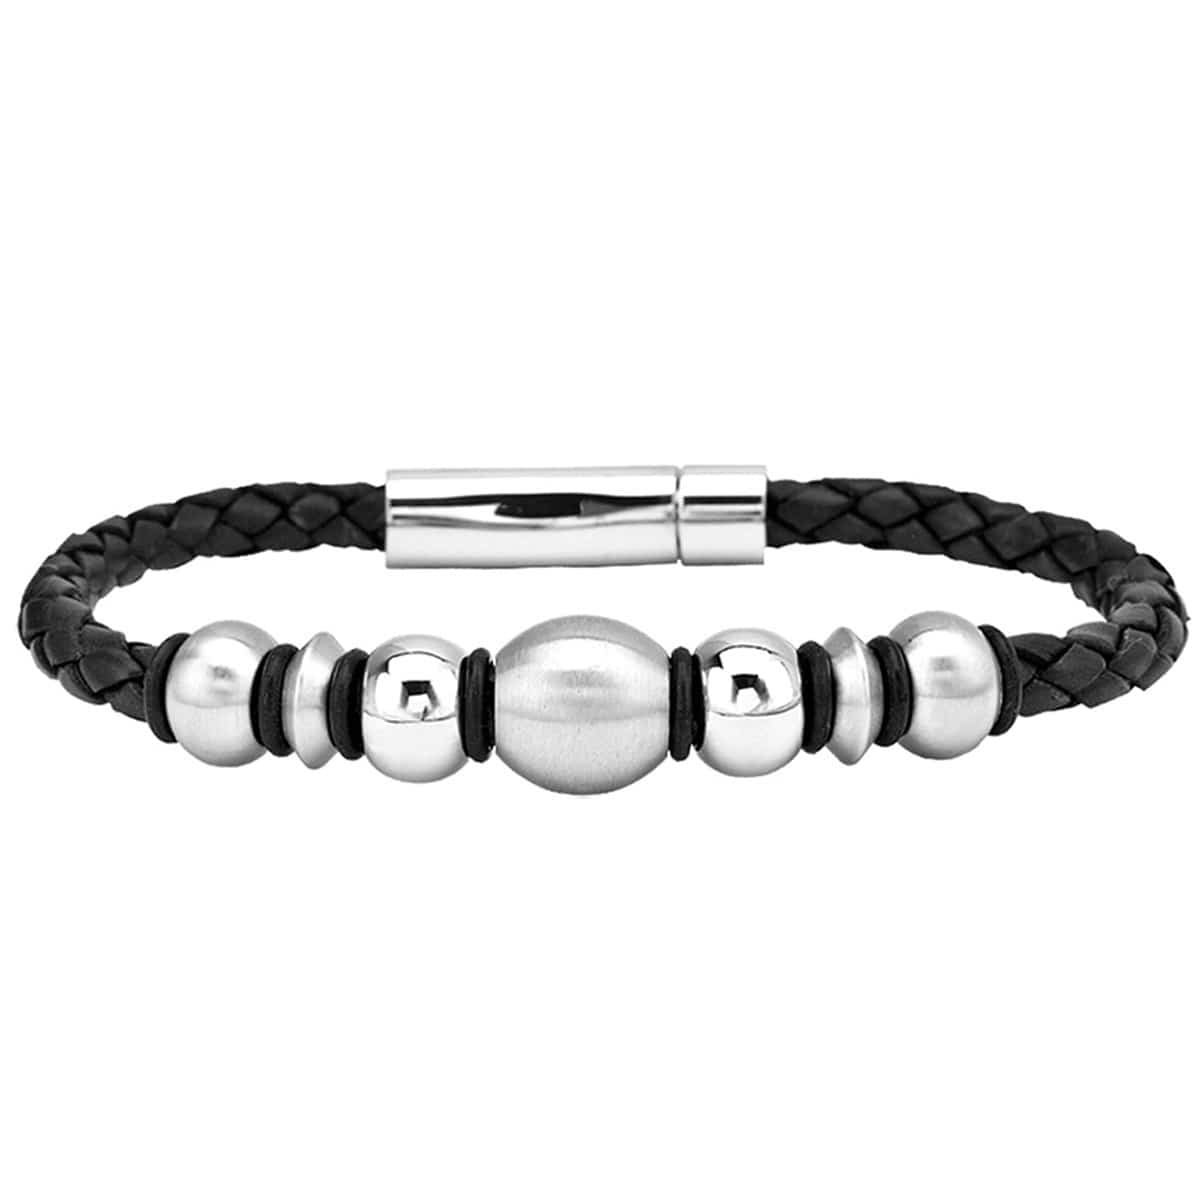 Silver Stainless Steel Black Braided Leather Twisted Bolt & Bead Bracelet